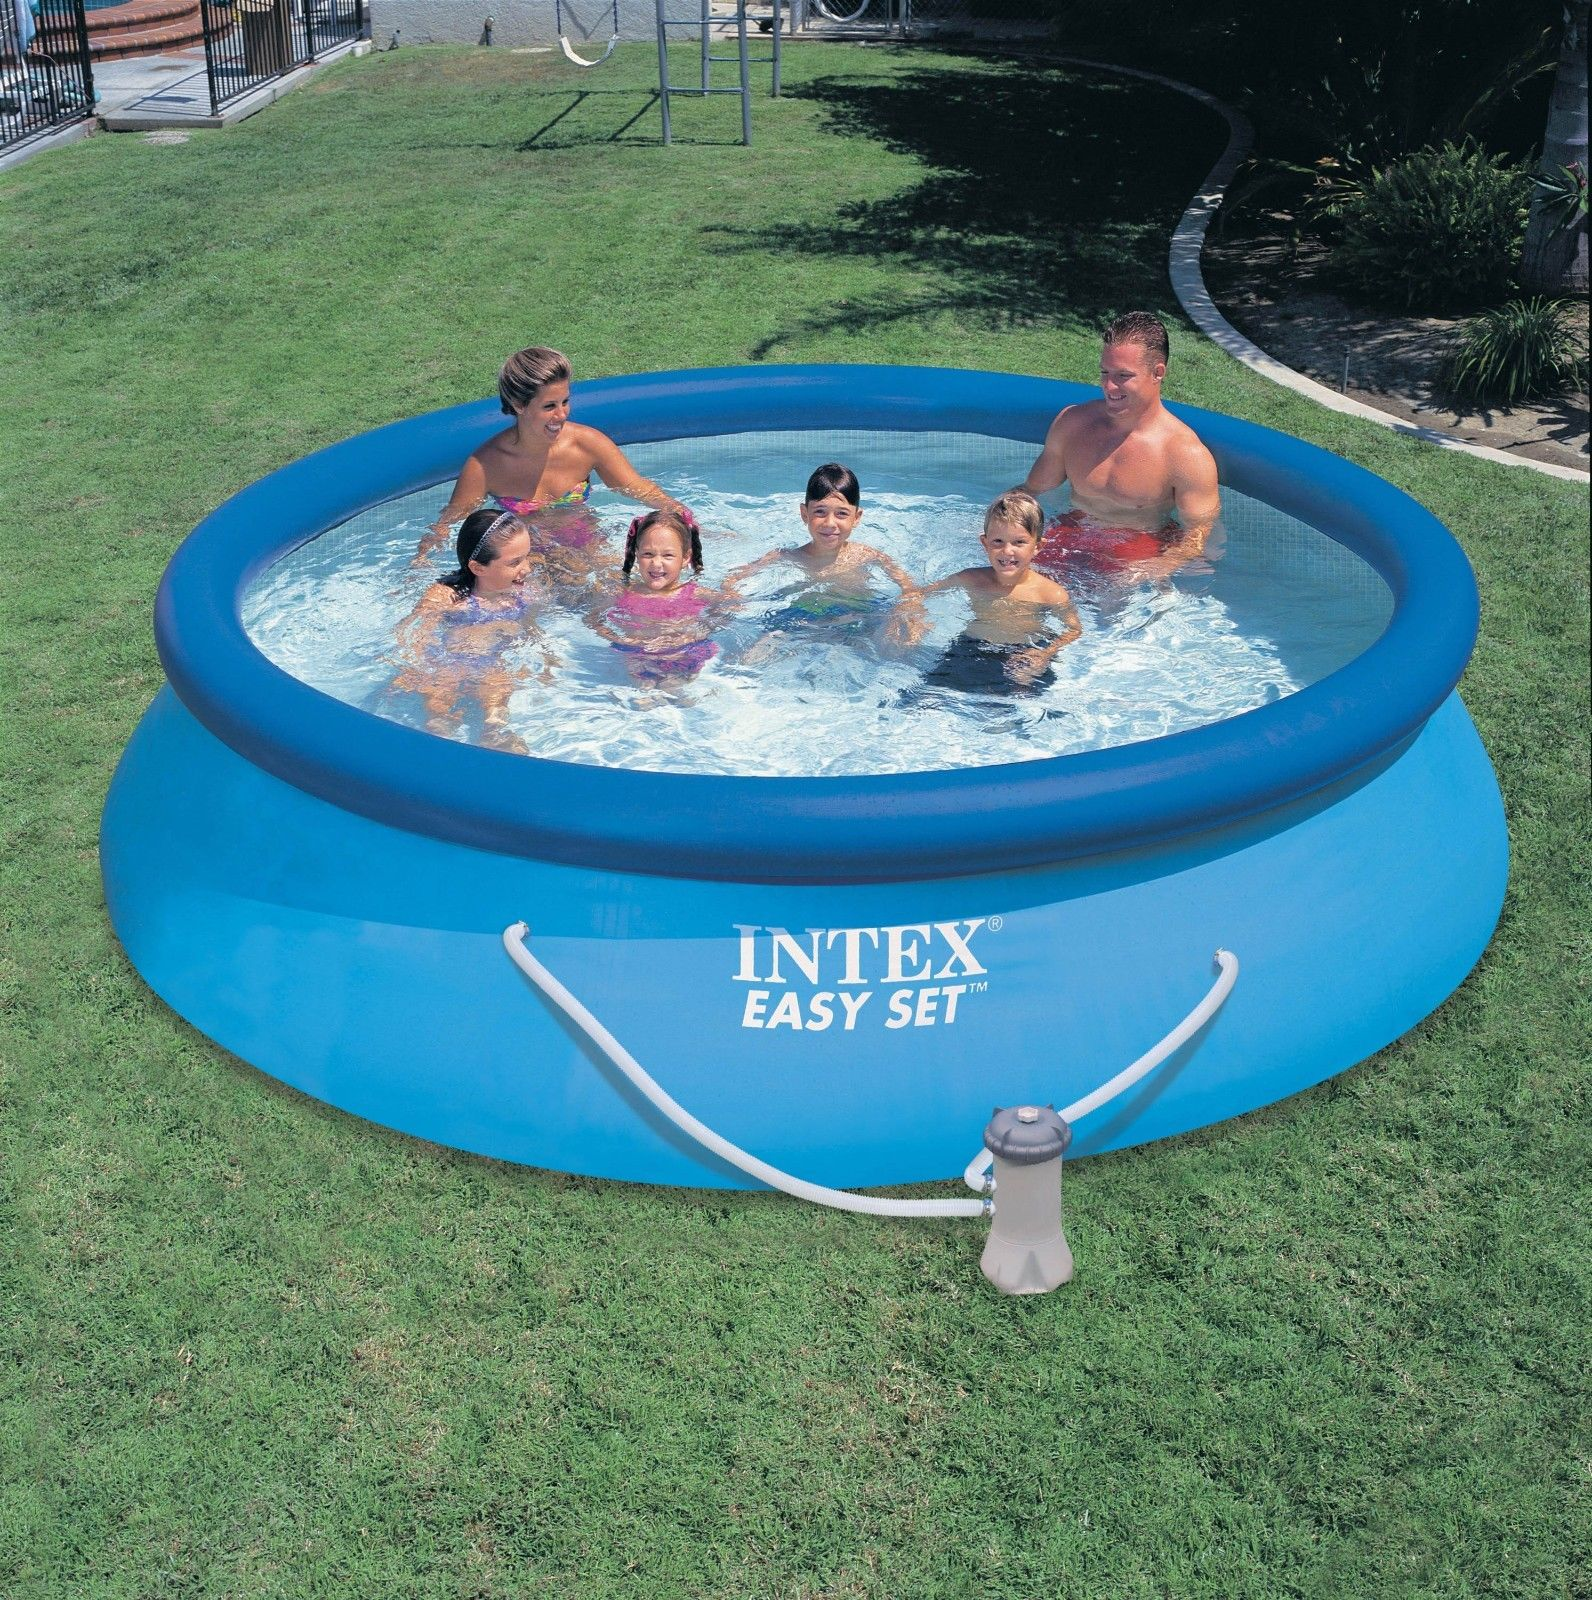 intex 12 x 30 easy set above ground swimming pool filter pump 28131eh